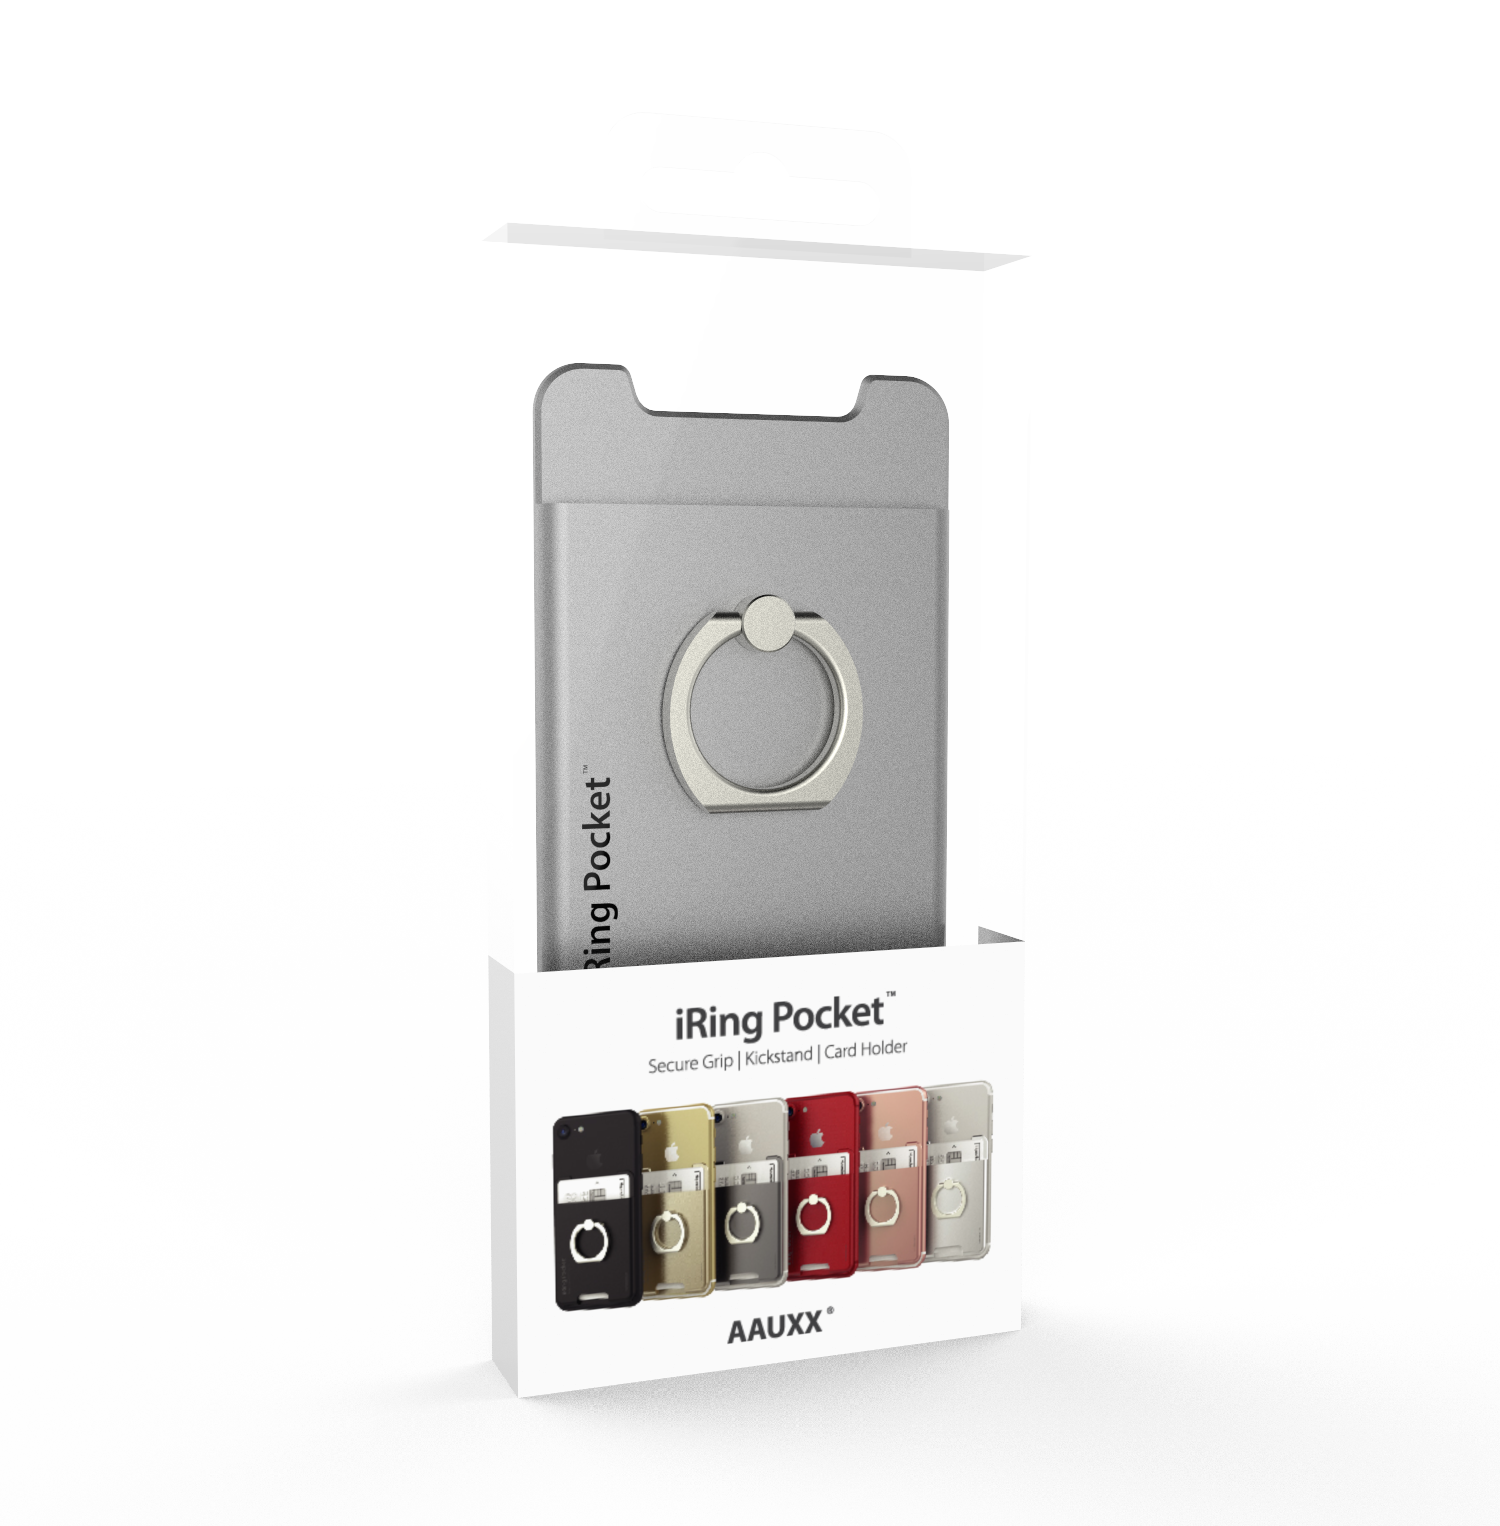 Iring pocket package silver